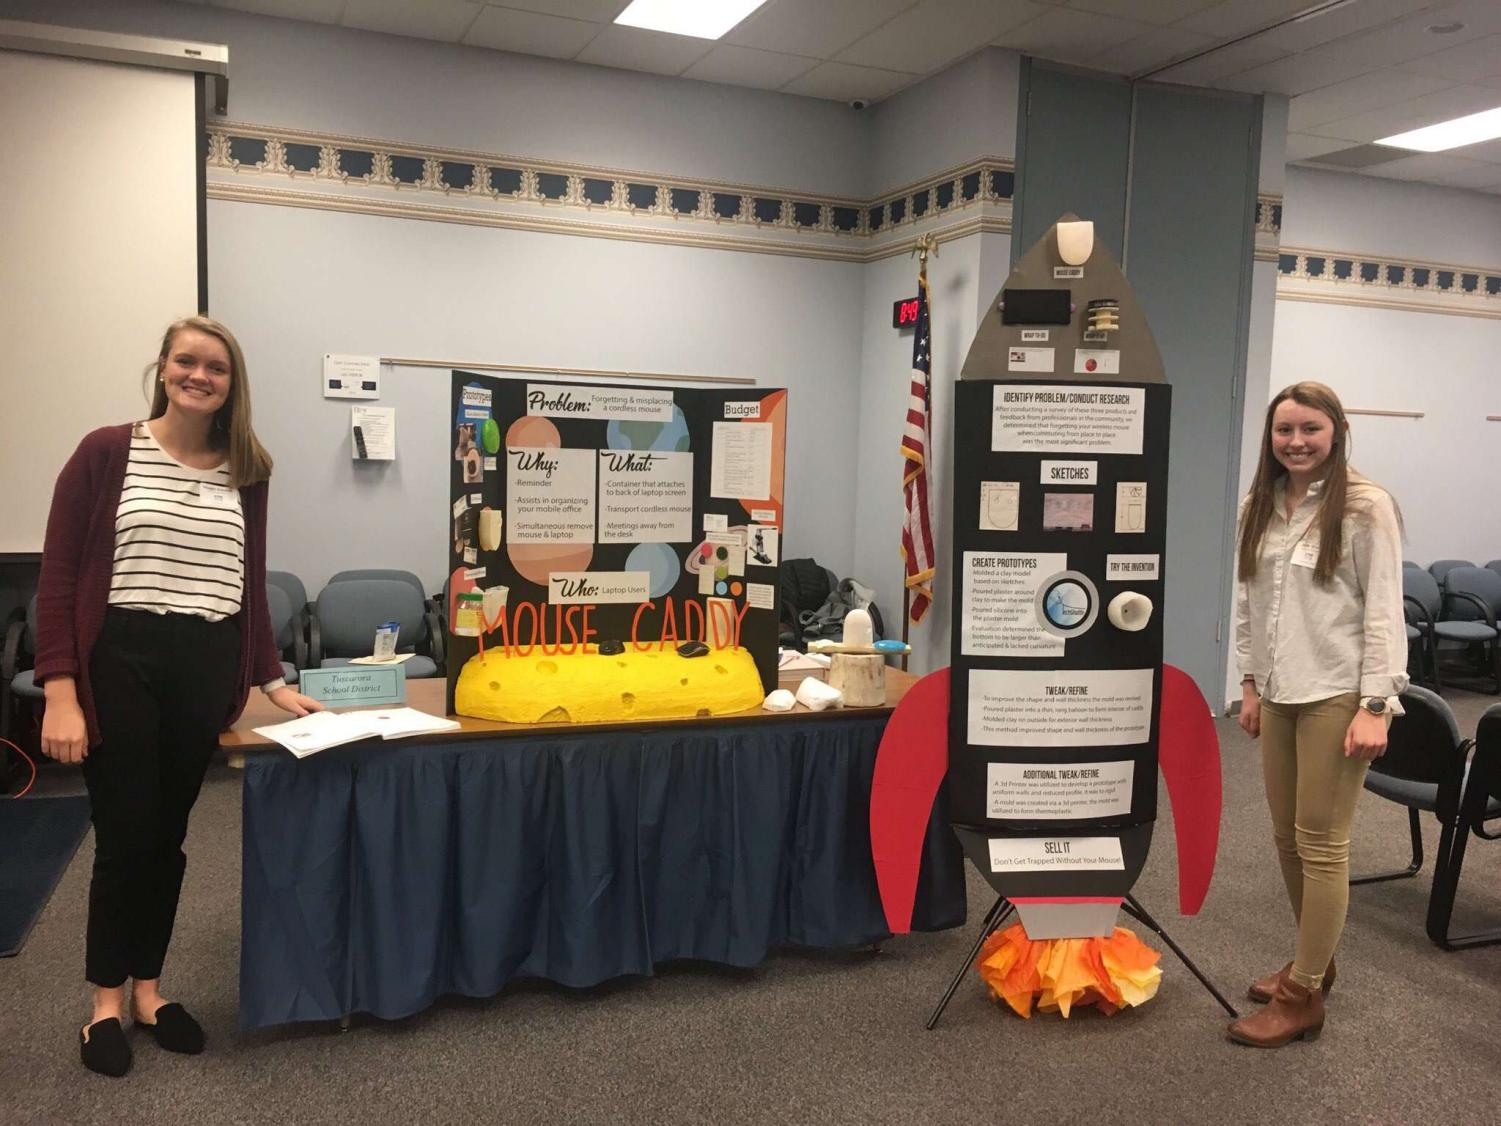 Maggie Strawoet (12) and Jade Wolfe (11) stand by their table presenting their invention at one of the competitions.